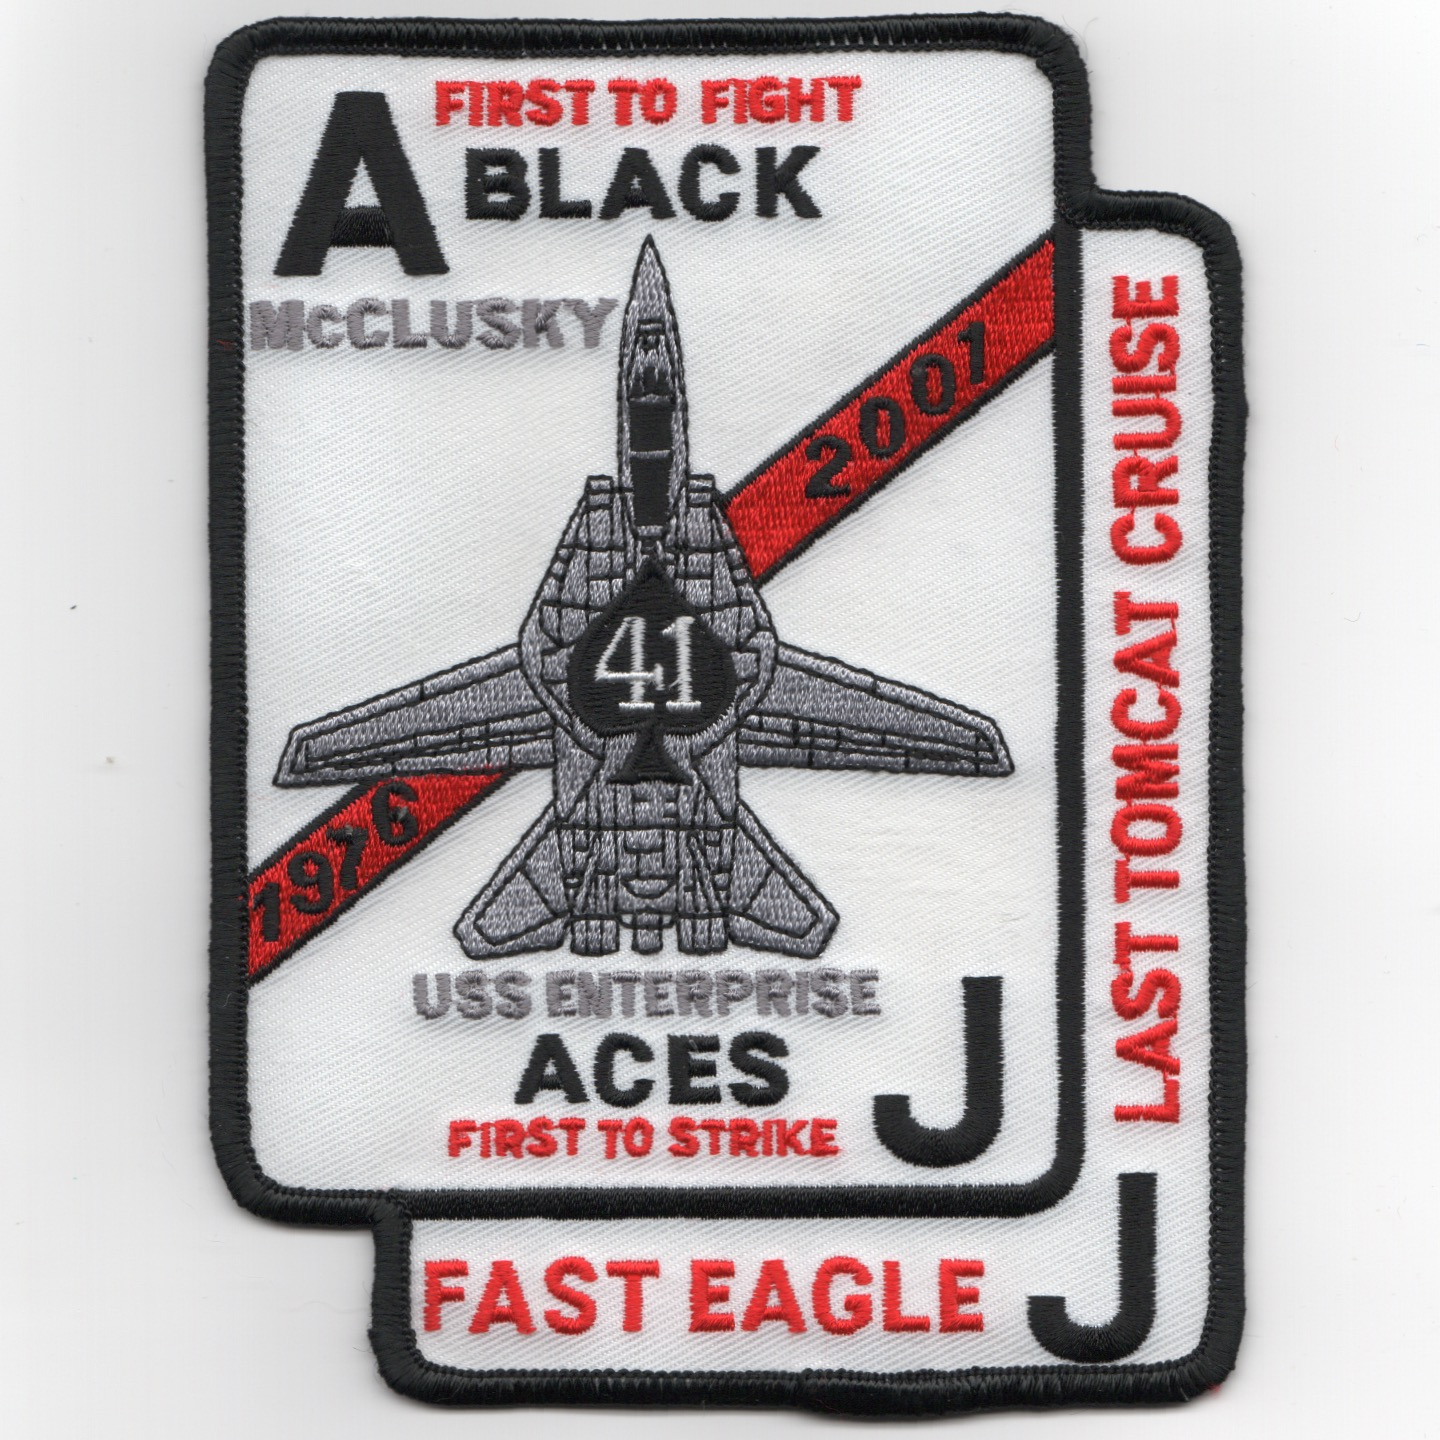 VF-41 2001 'Last Cruise' Patch